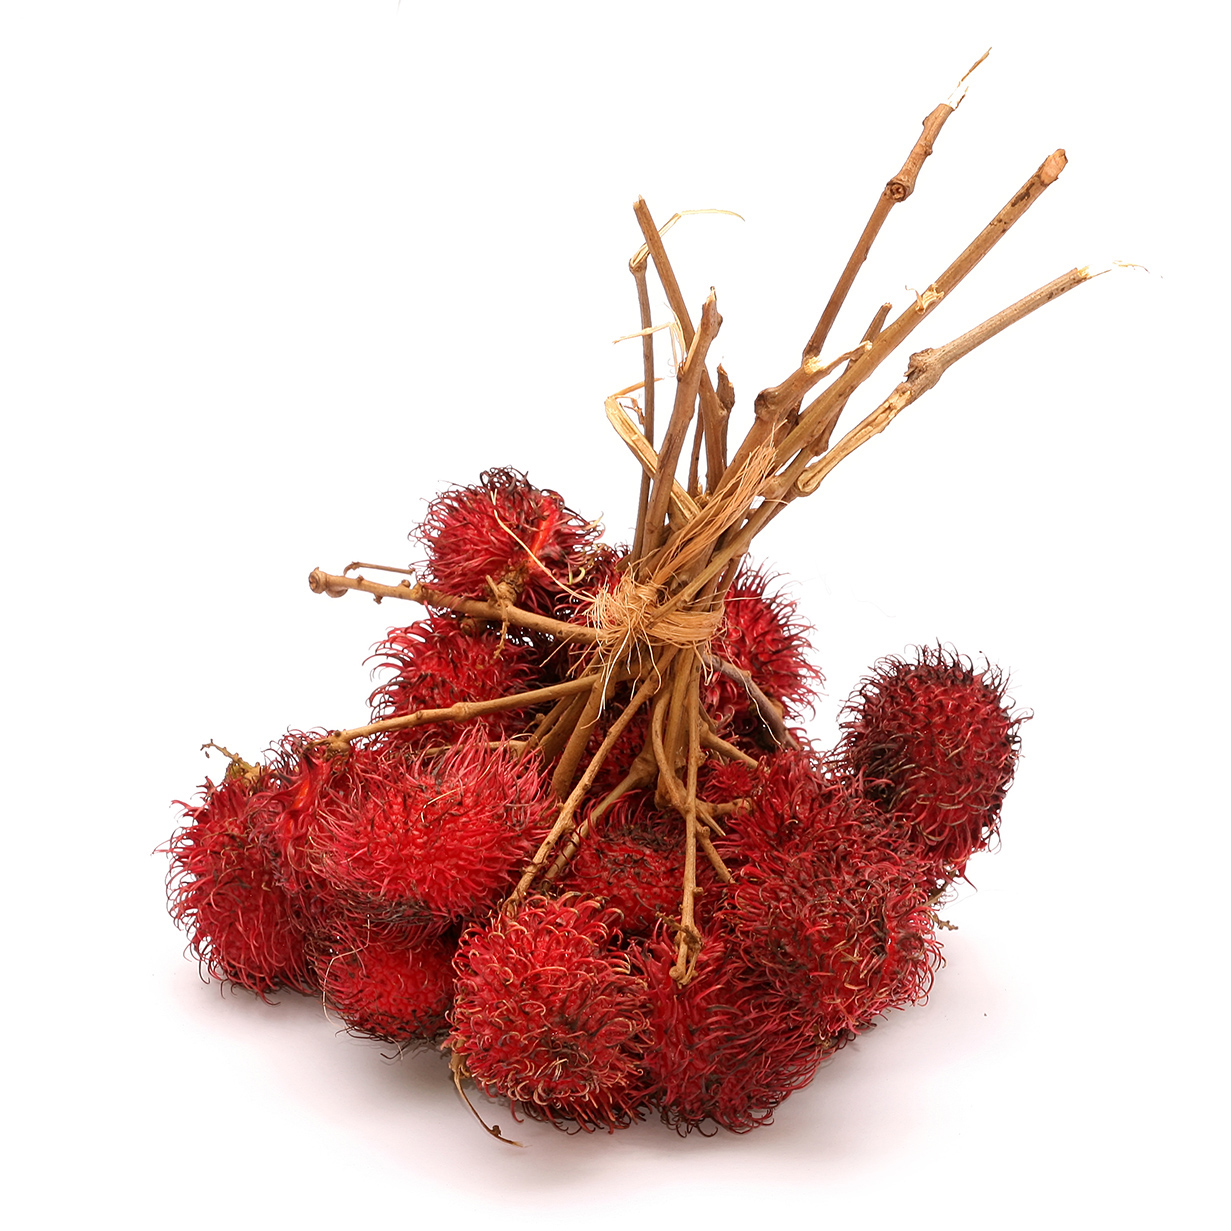 A Bundle Of Fuzzy Red Fruits On Woody Stems